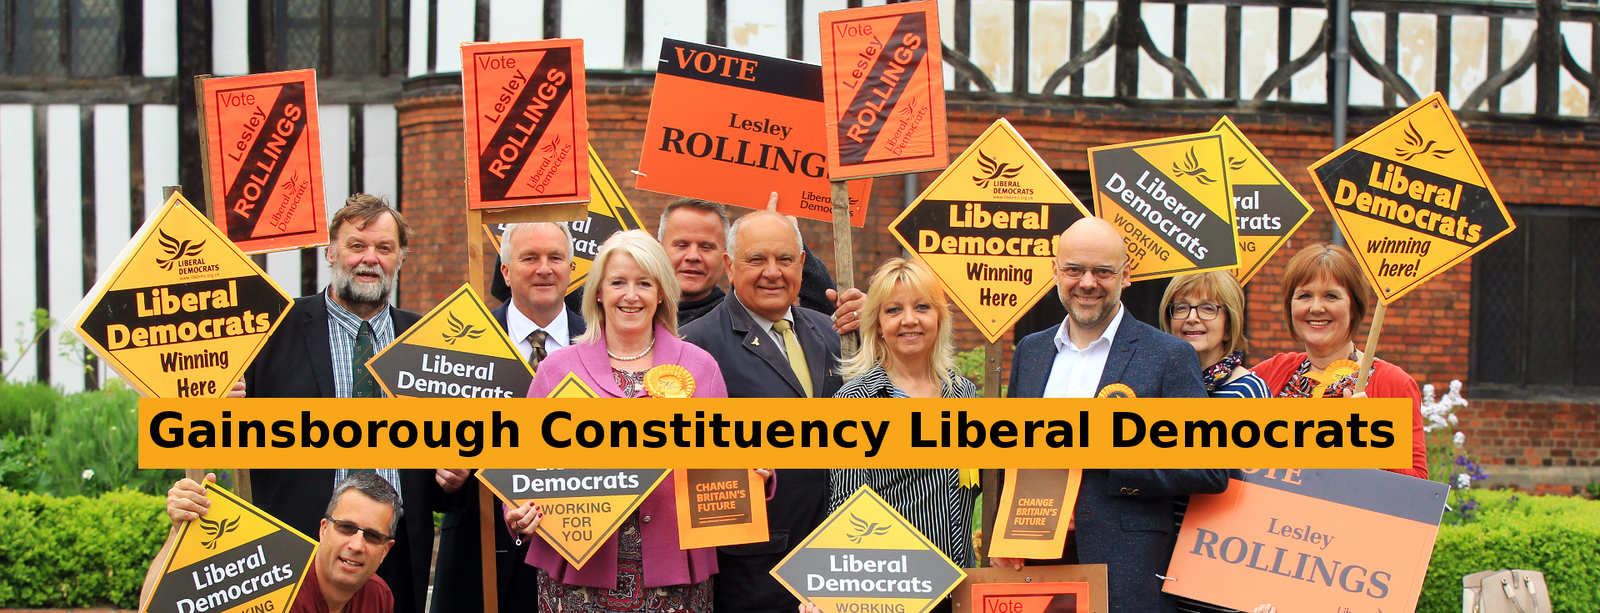 Gainsborough Constituency Liberal Democrats